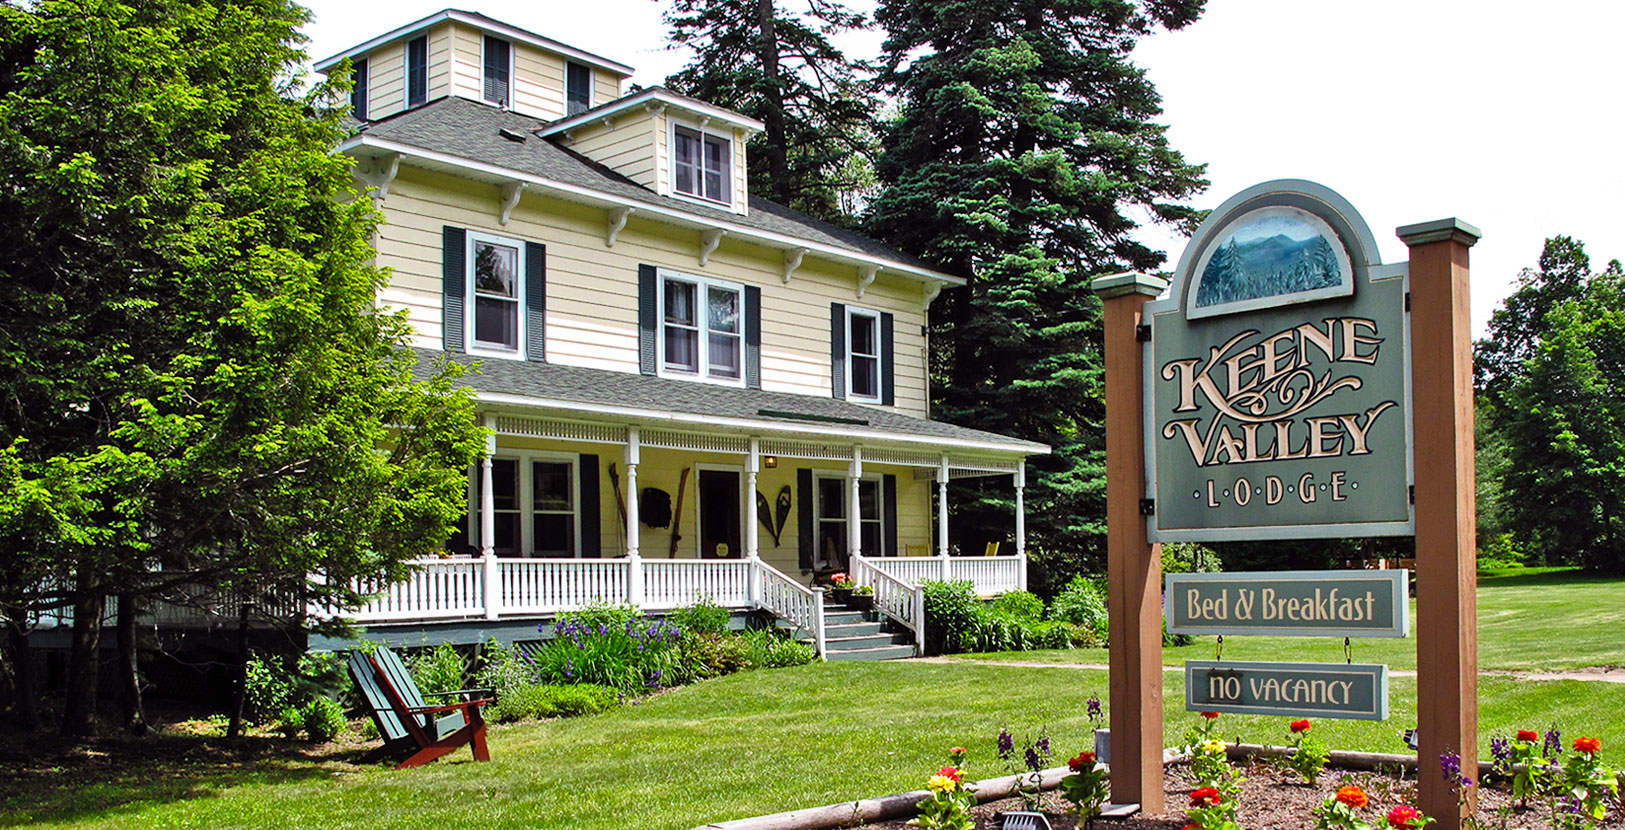 Exterior photo of Keene Valley Lodge